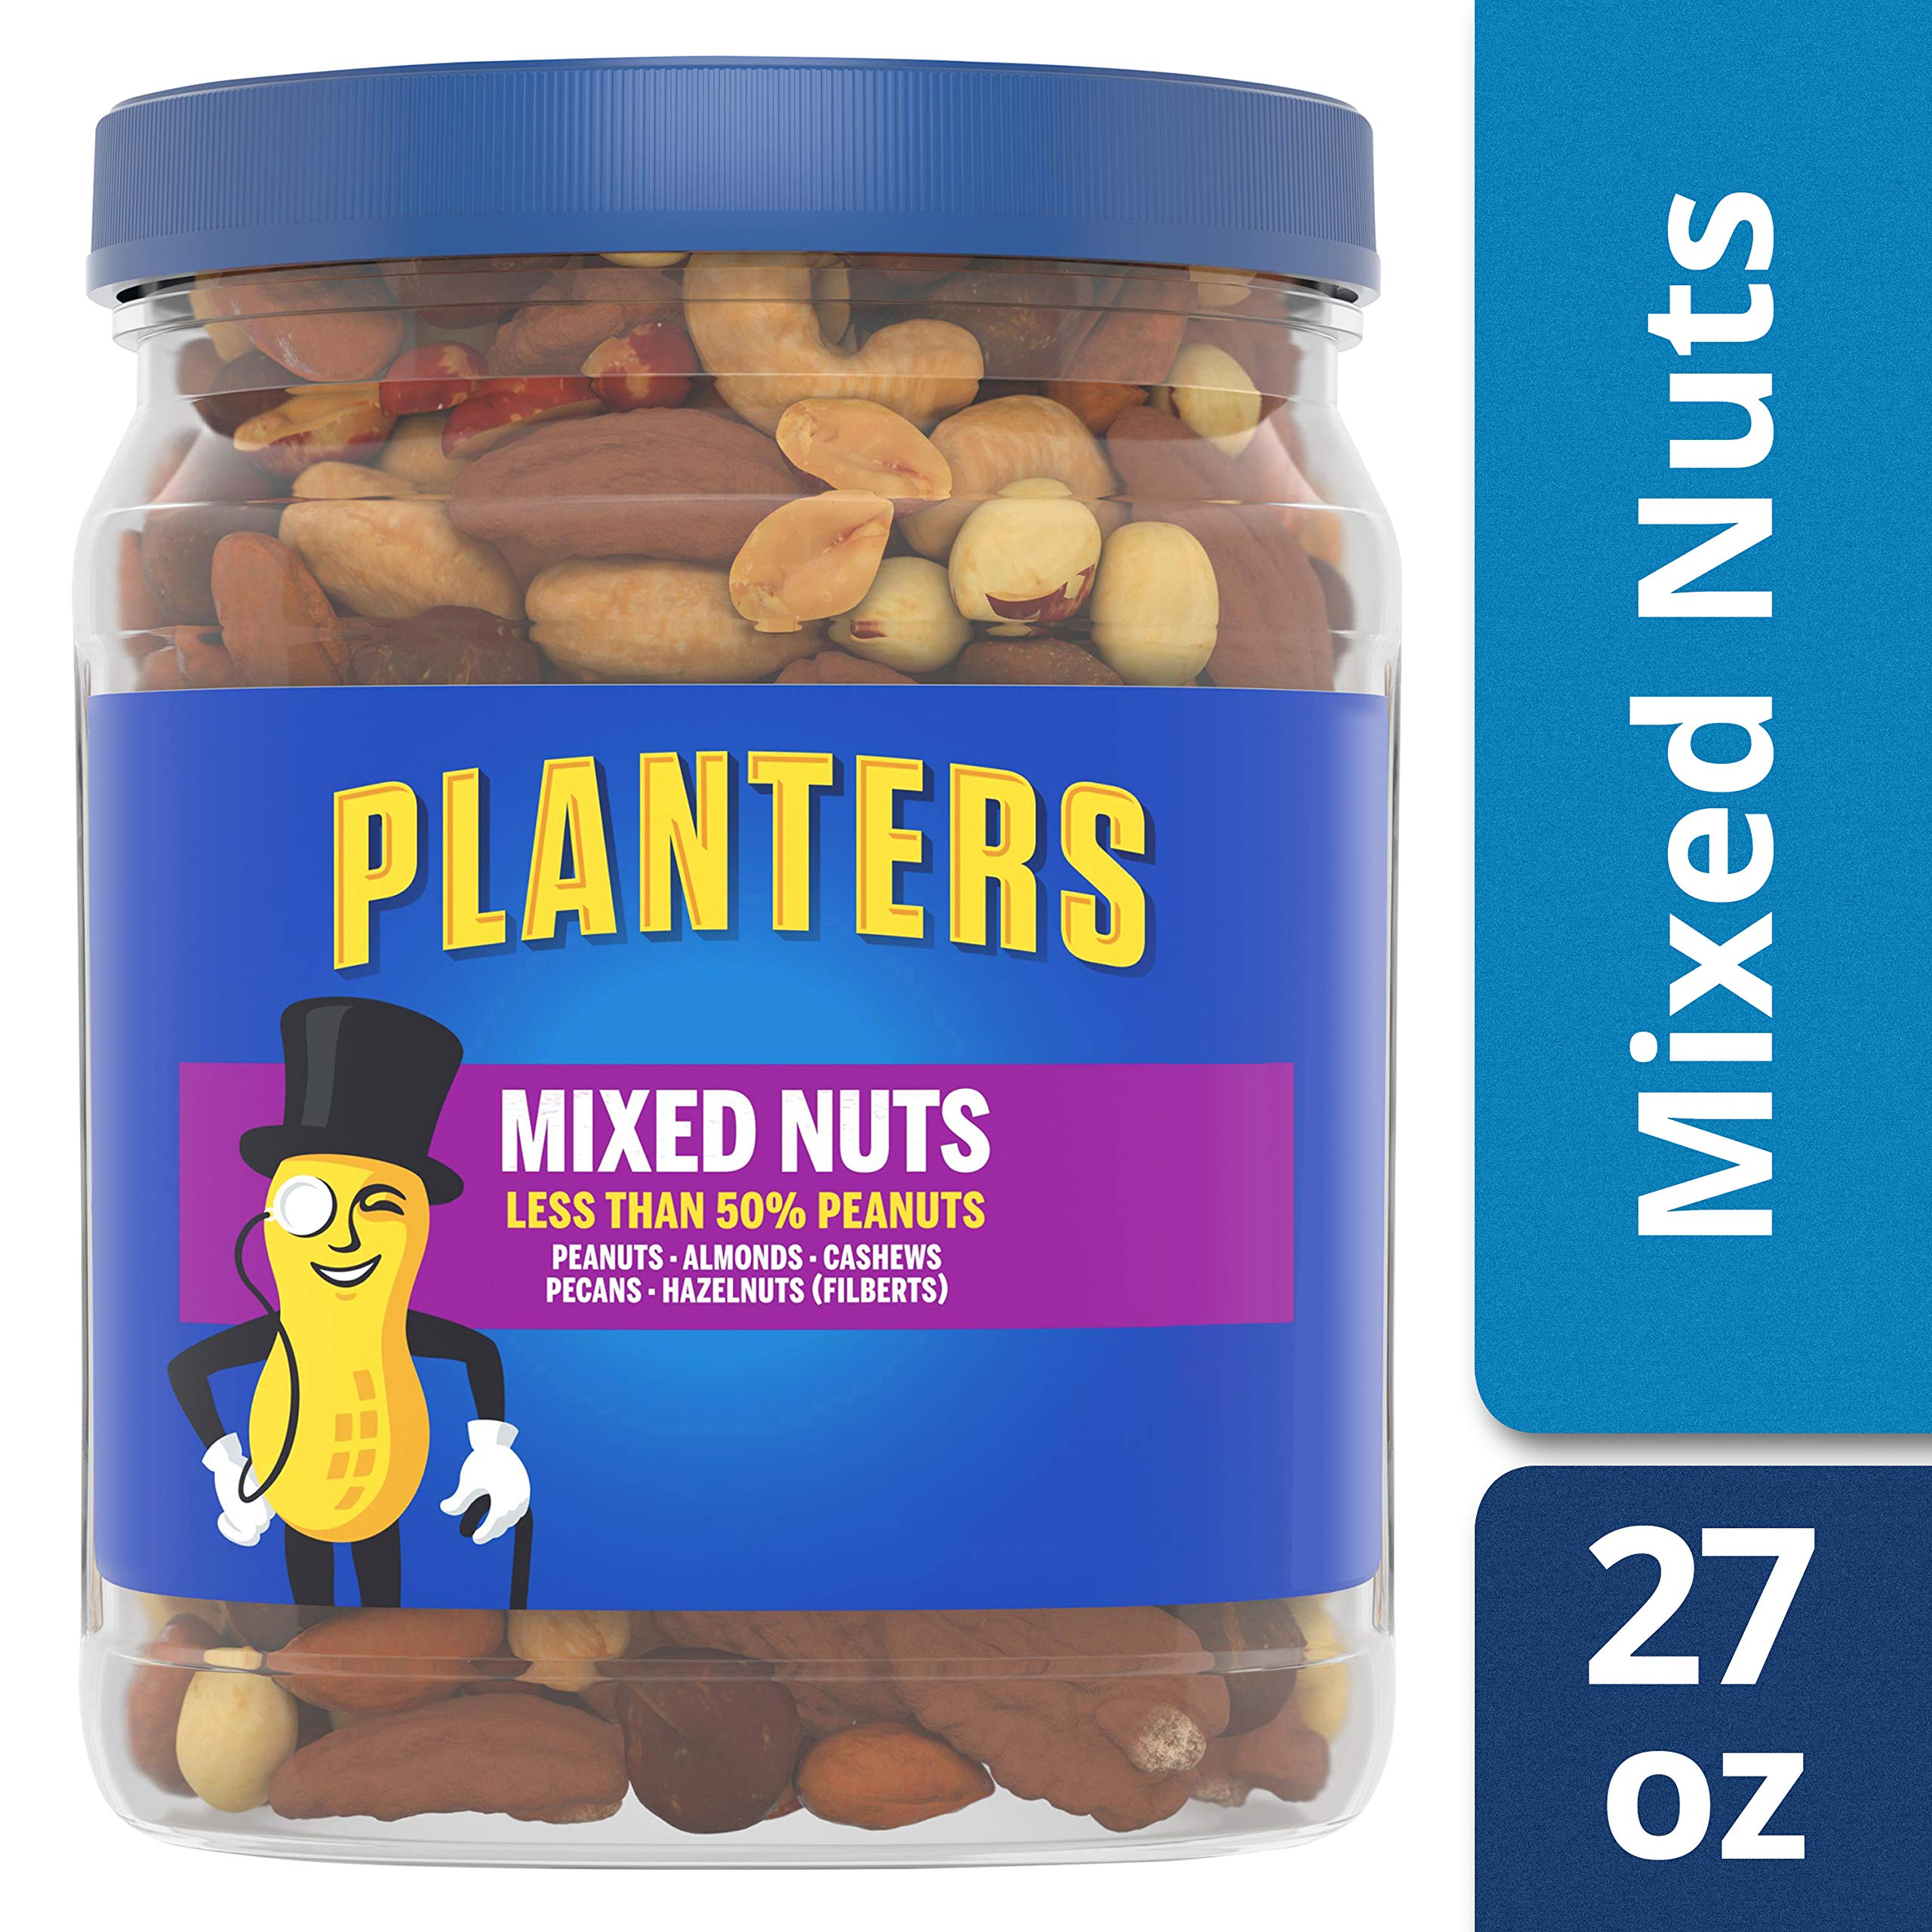 Planters Mixed Nuts, Regular Mixed Nuts, 1lb 11 Ounce Jar by Planters (Image #4)